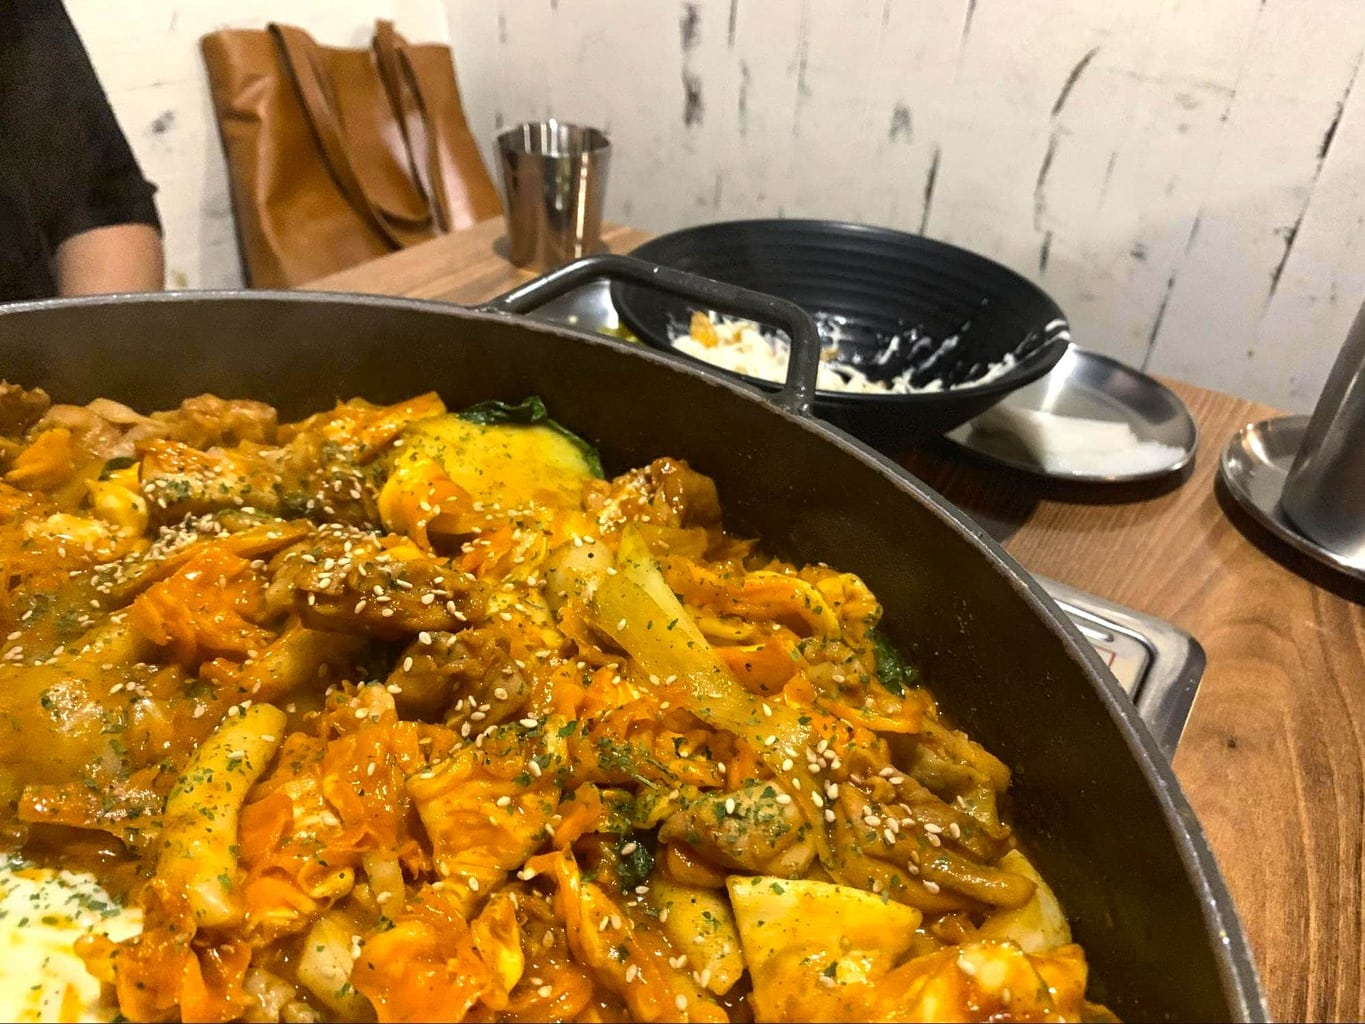 Dak galbi (spicy stir-fried chicken)